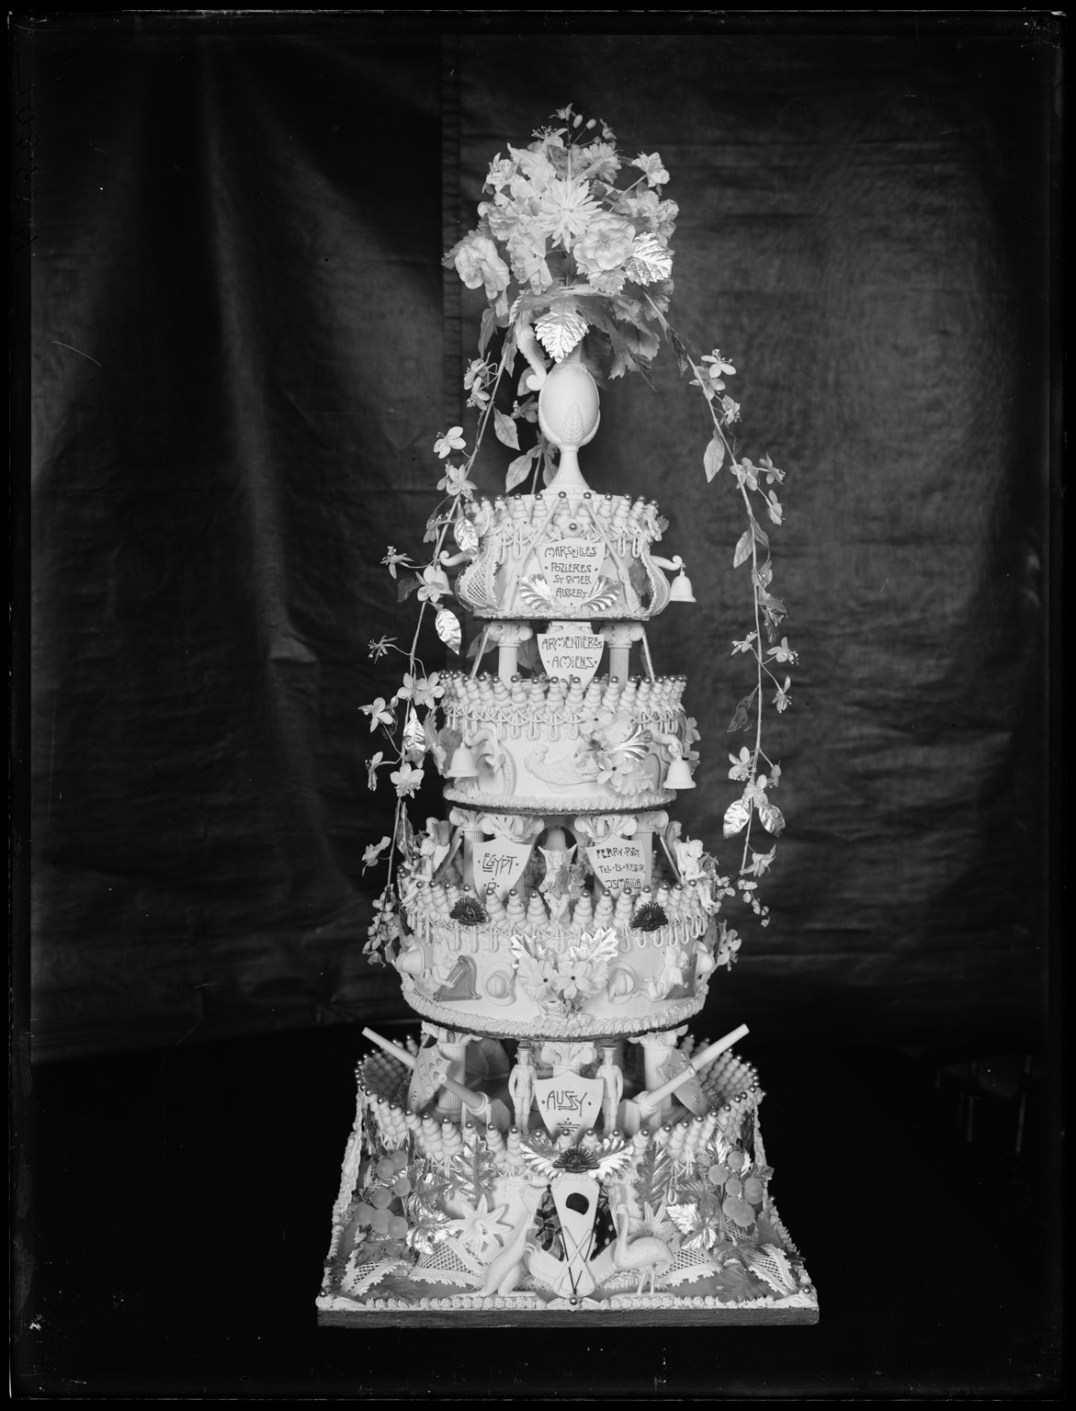 Wedding cake, State Bakery, 2 May 1918. From NRS 4481, MS5802